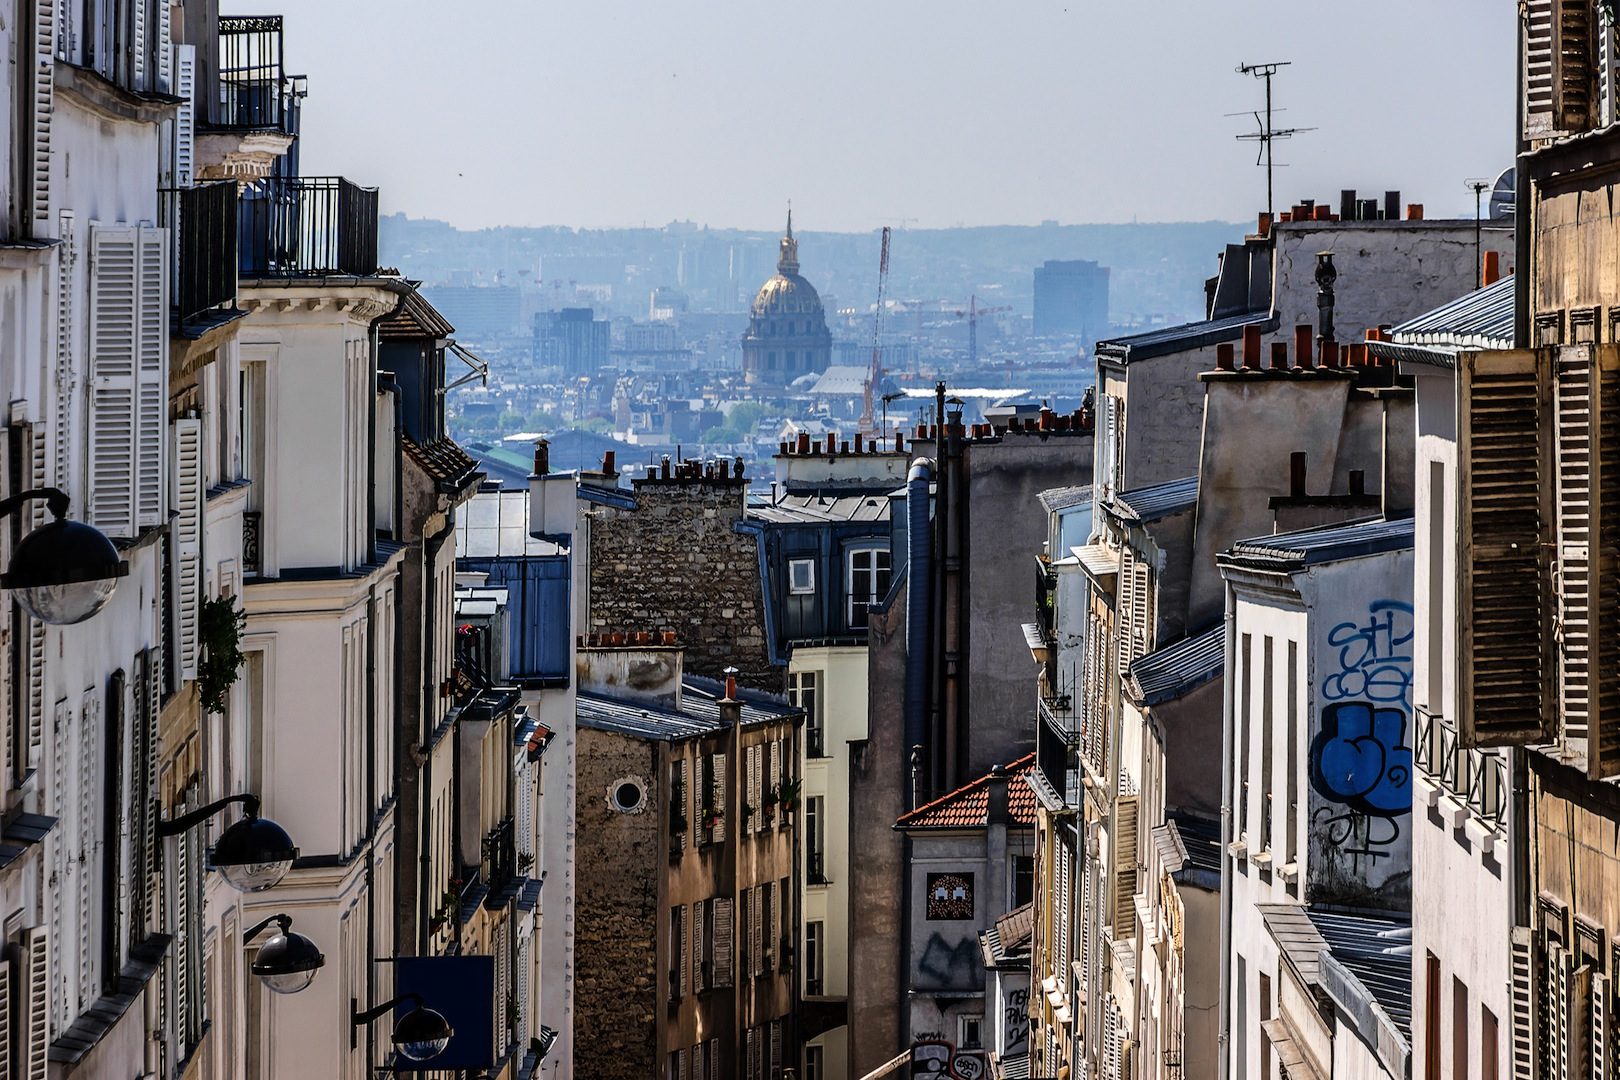 Montmartre, Bohemian quarter of Paris